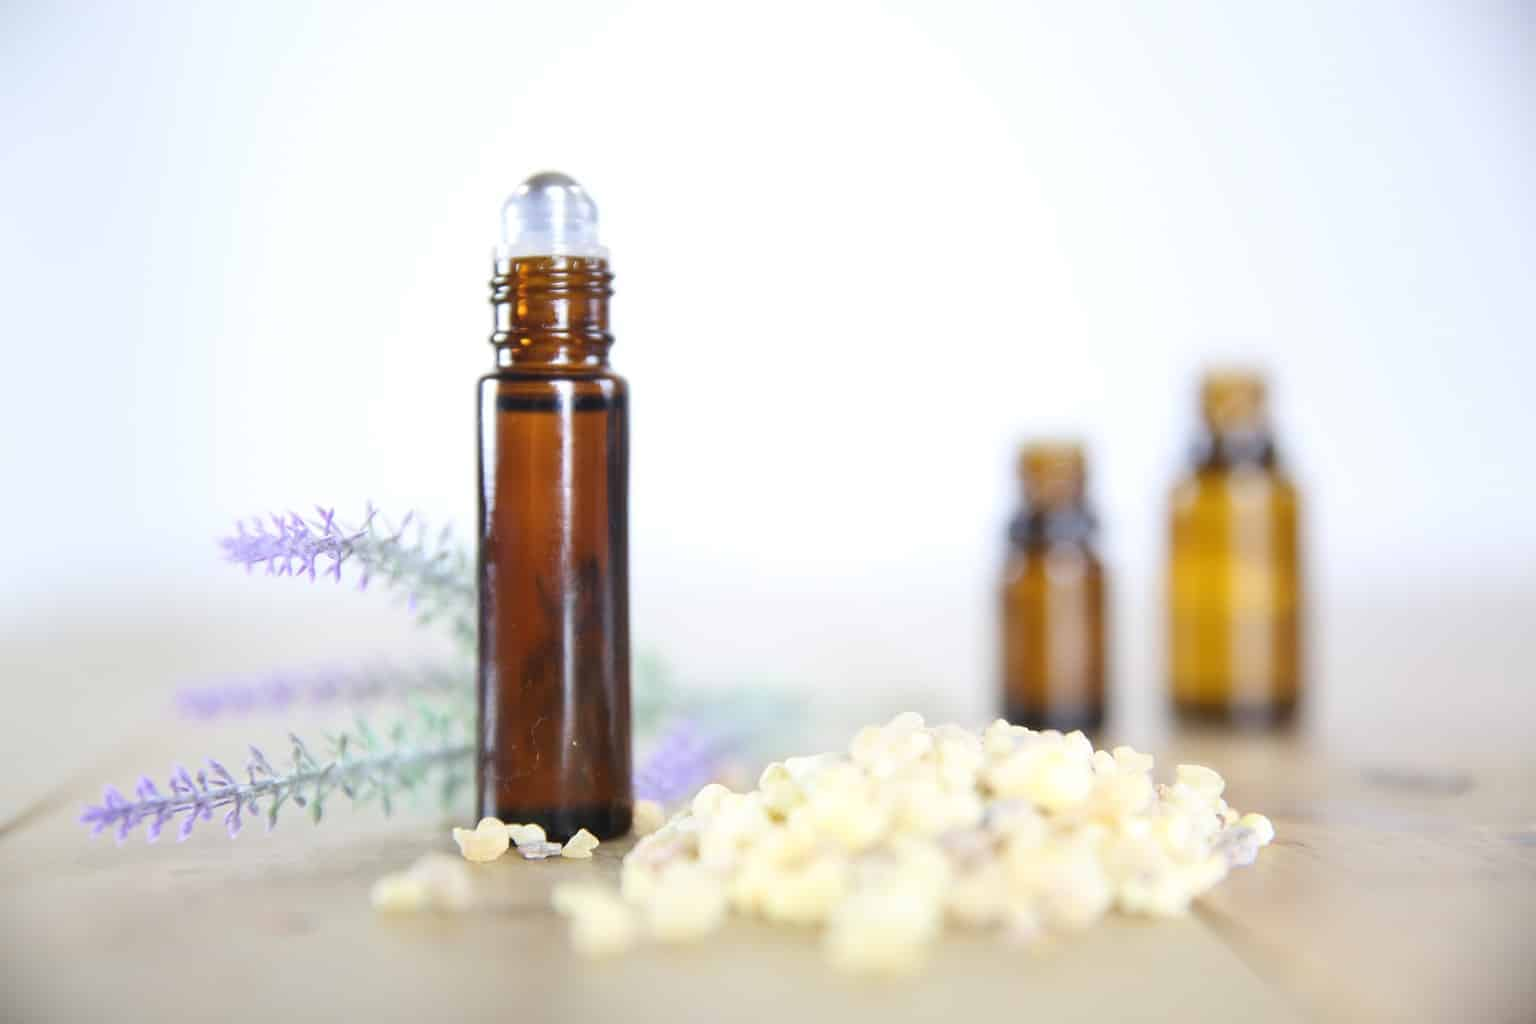 Try this essential oil roller bottle to clear up any skin irritation or blemish.